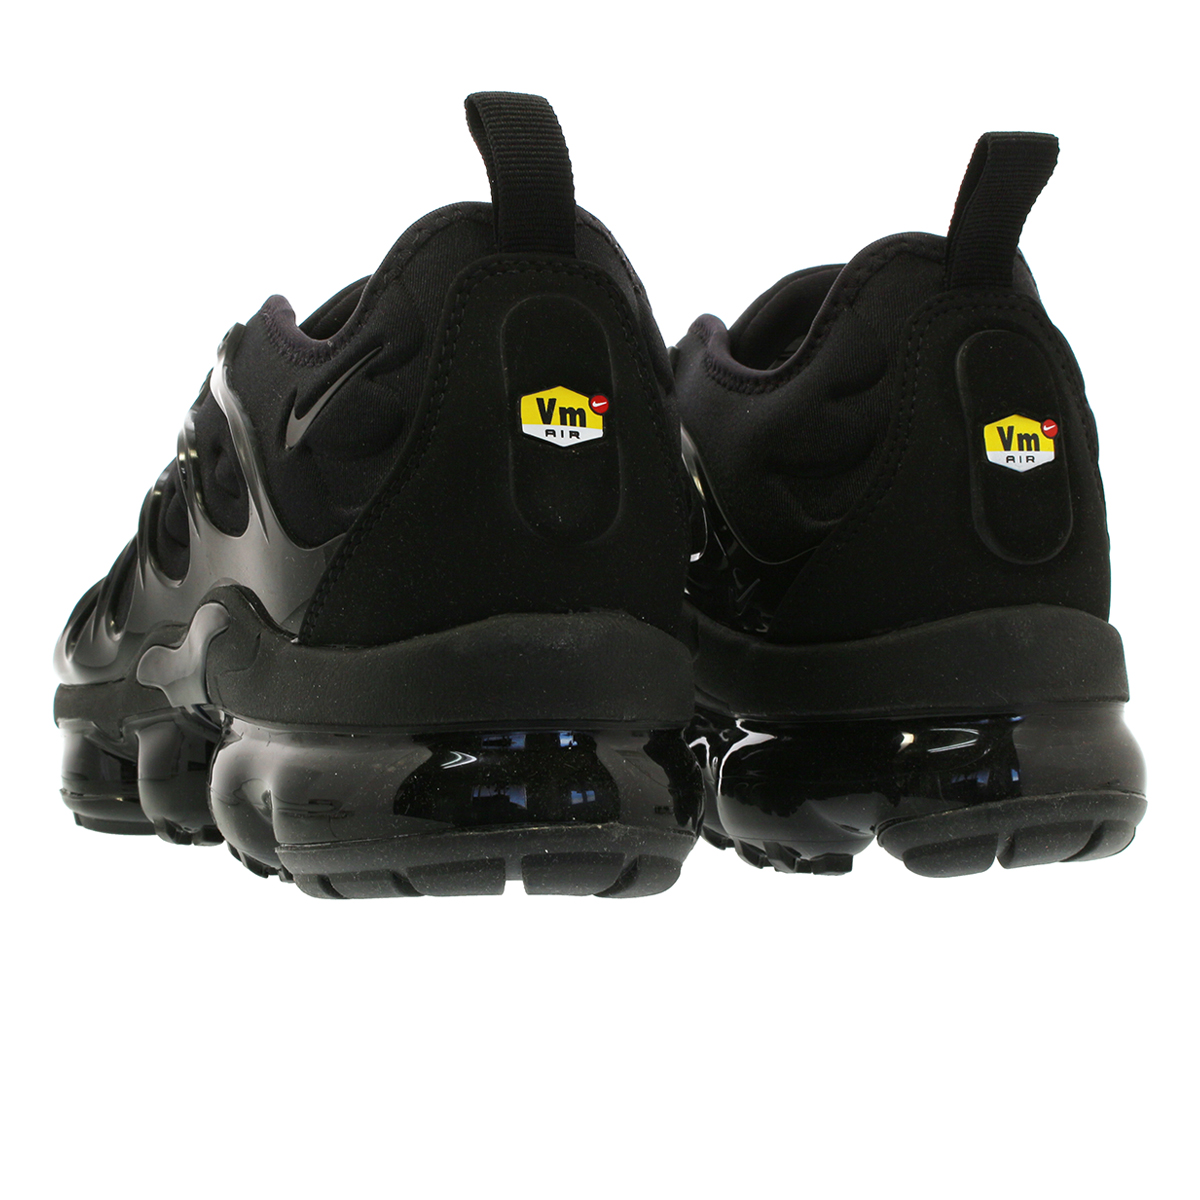 save off 95293 2a7d8 NIKE AIR VAPORMAX PLUS Nike vapor max plus BLACK/BLACK/DARK GREY